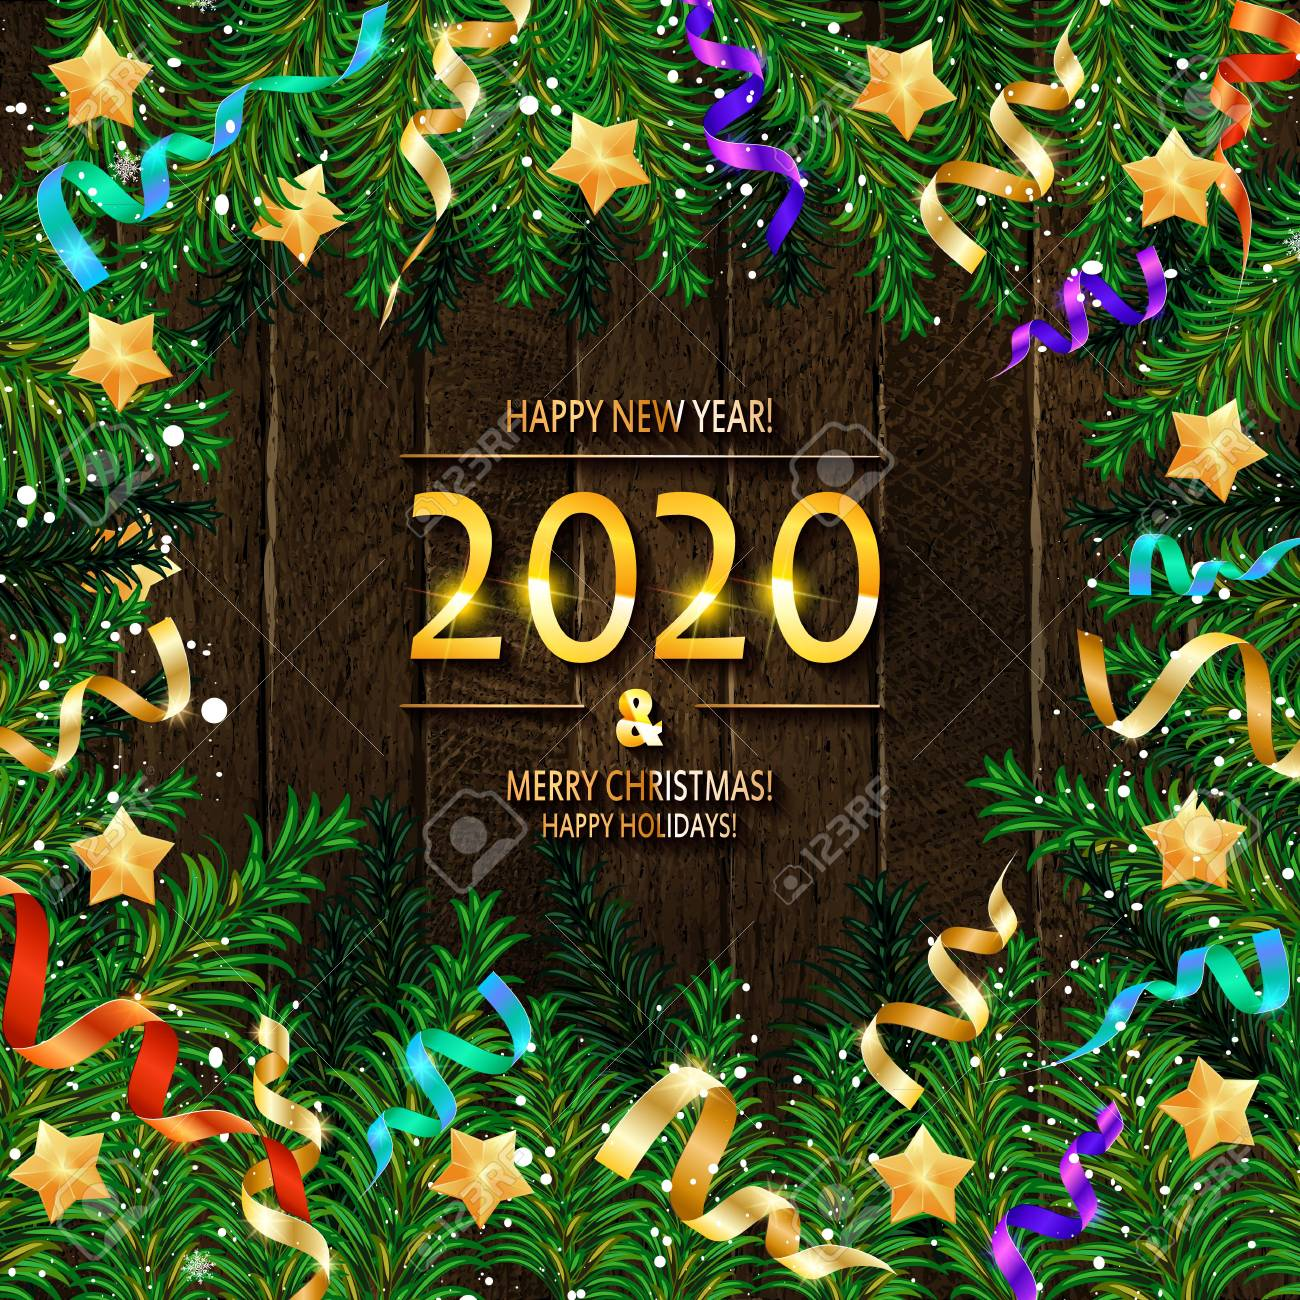 Christmas 2020.2020 Happy New Year And Merry Christmas Frame With Snow And Real